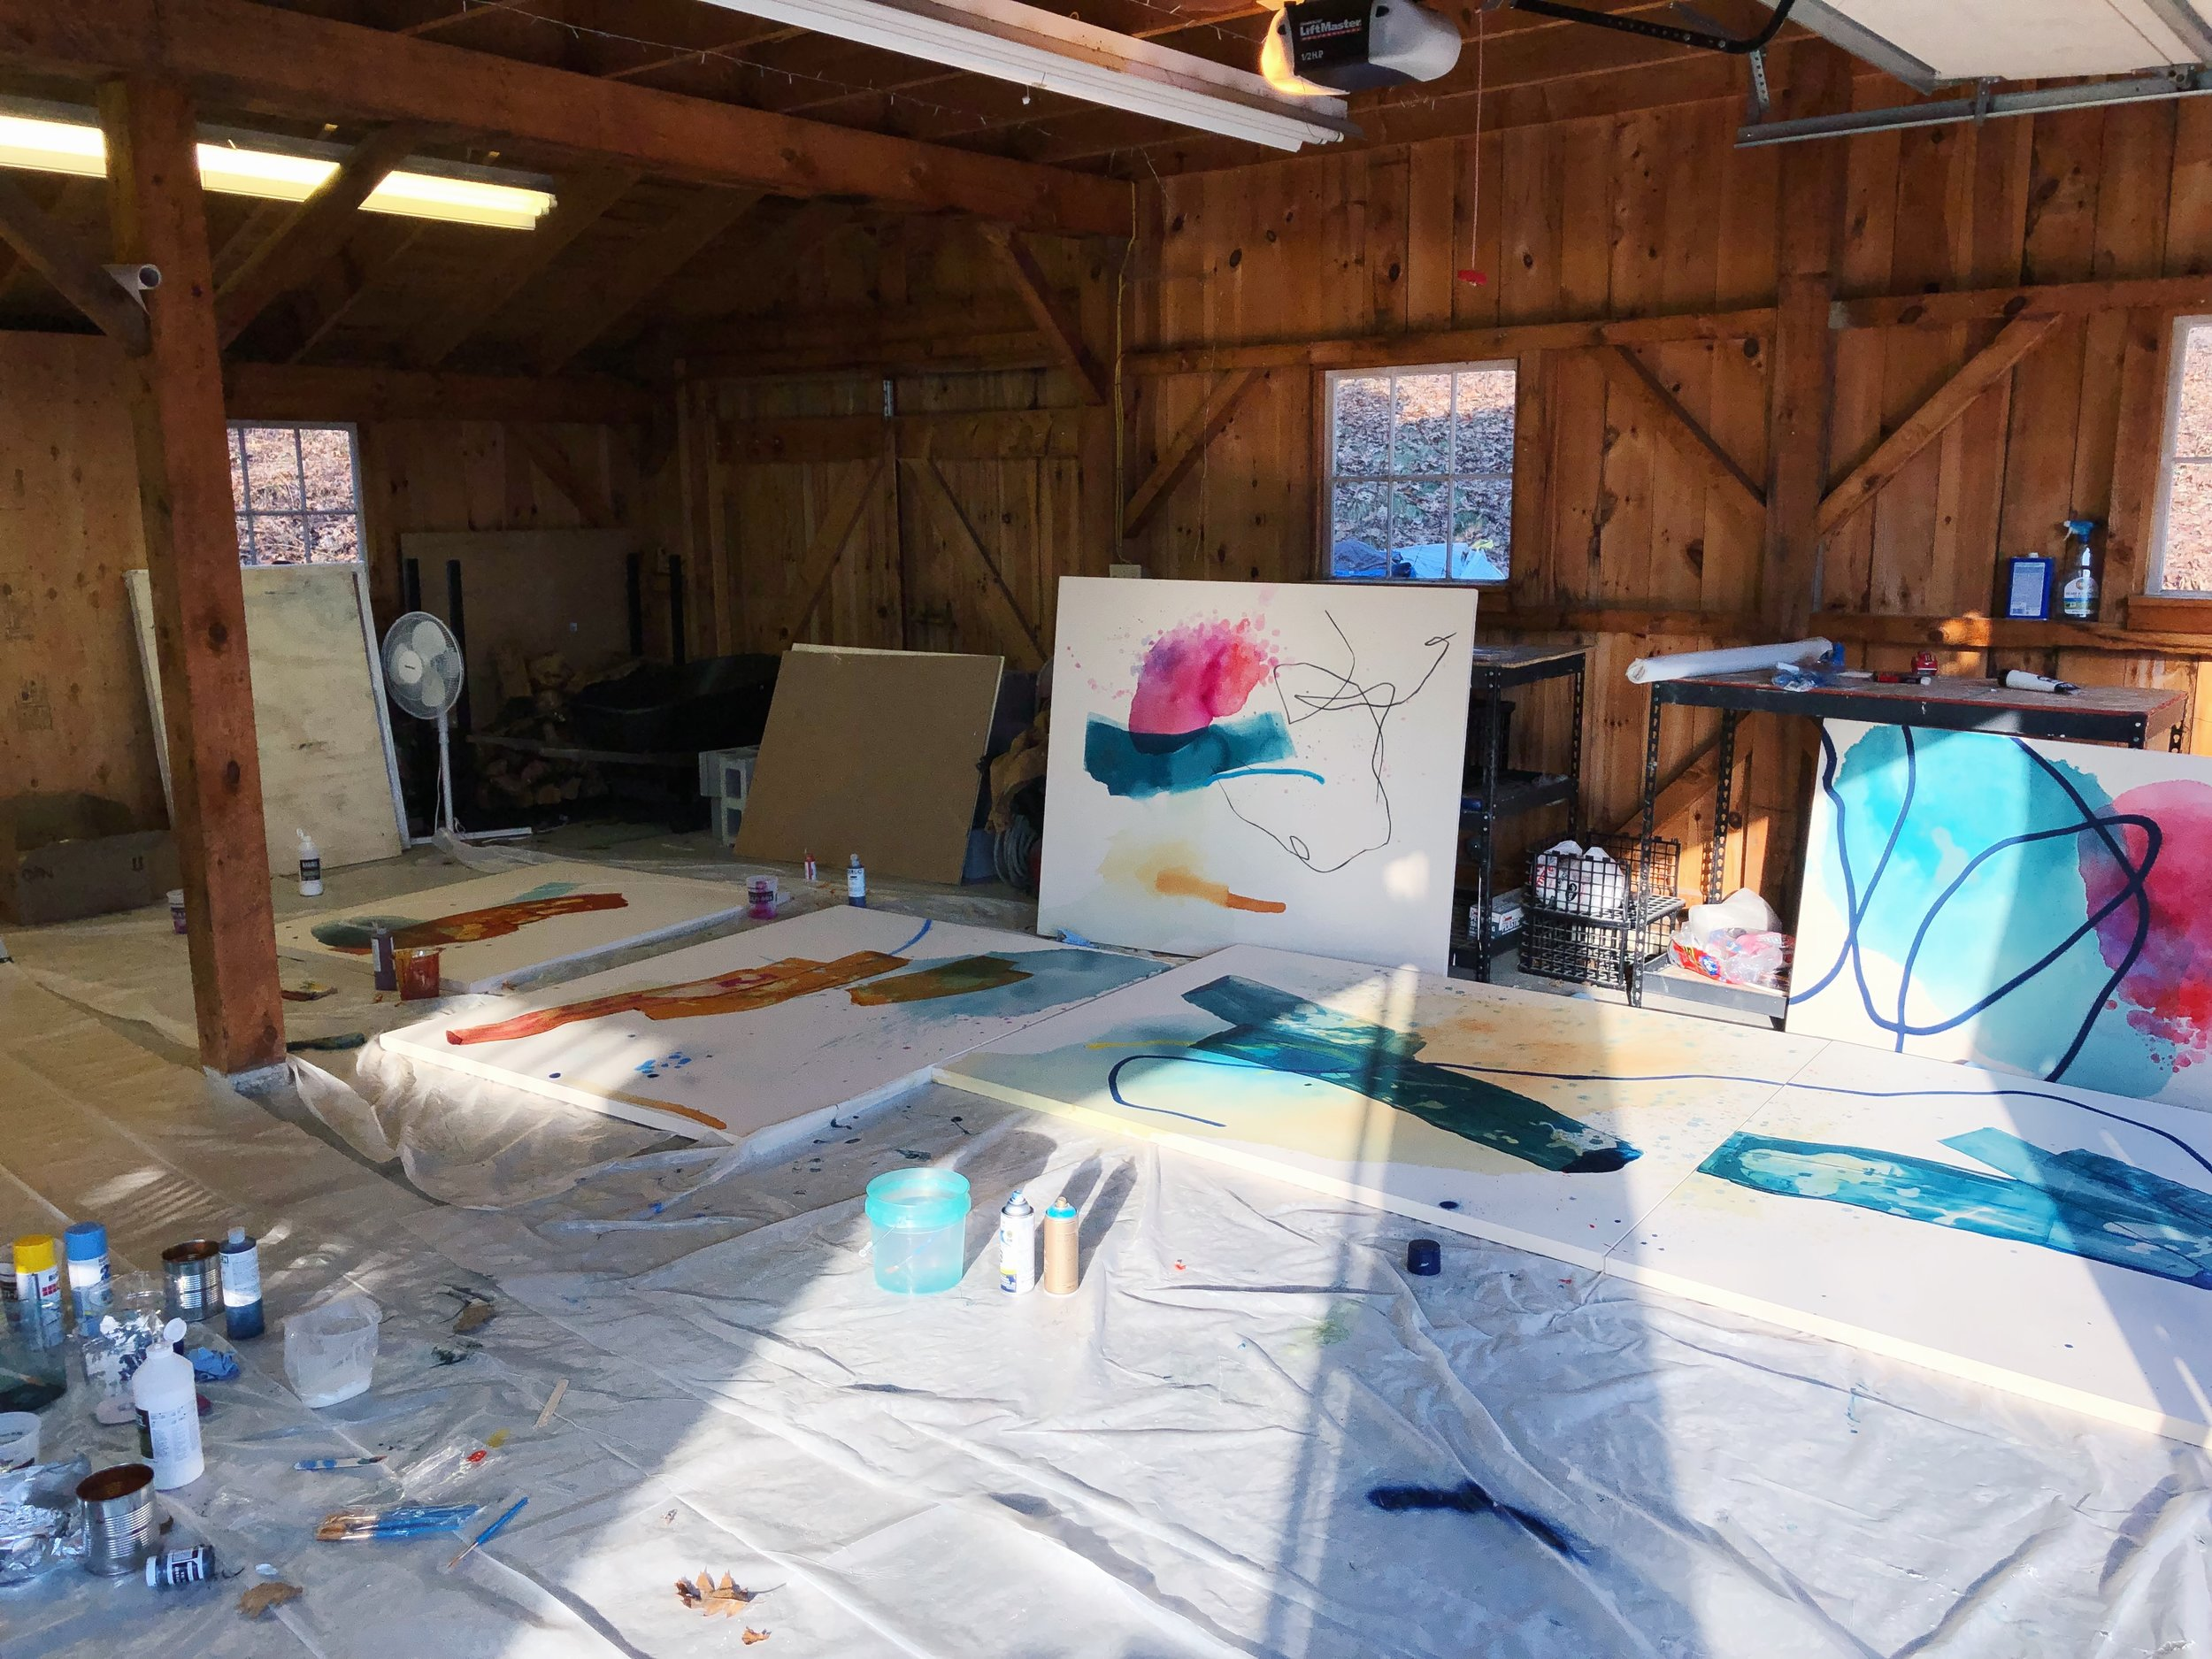 Heather Day's studio at The Macedonia Institute Artist Residency